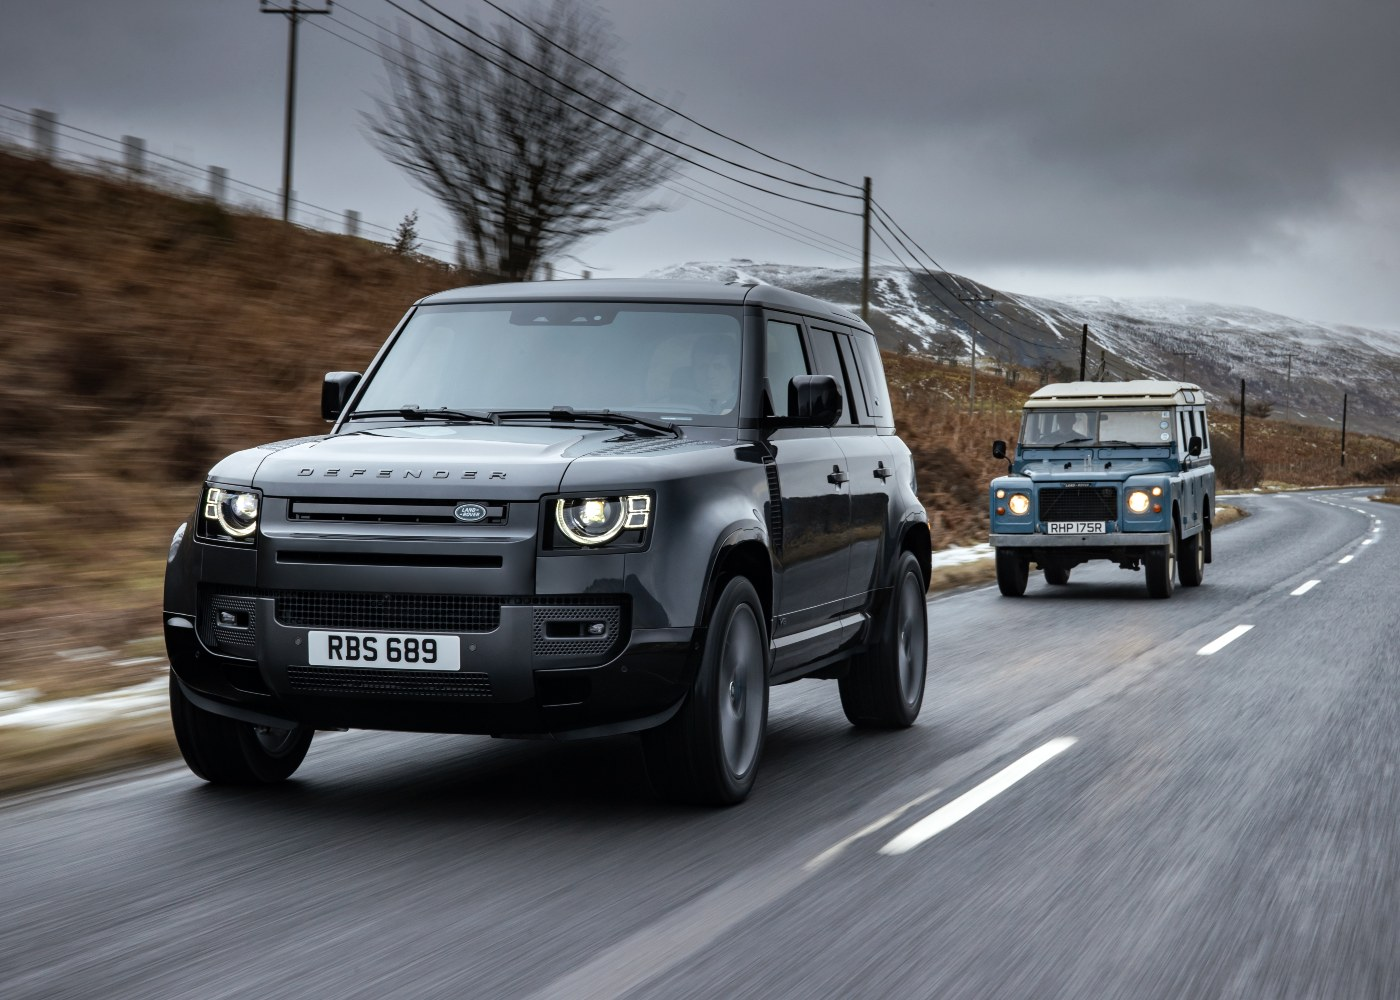 Land Rover Defender nomeado para carro do ano 2021